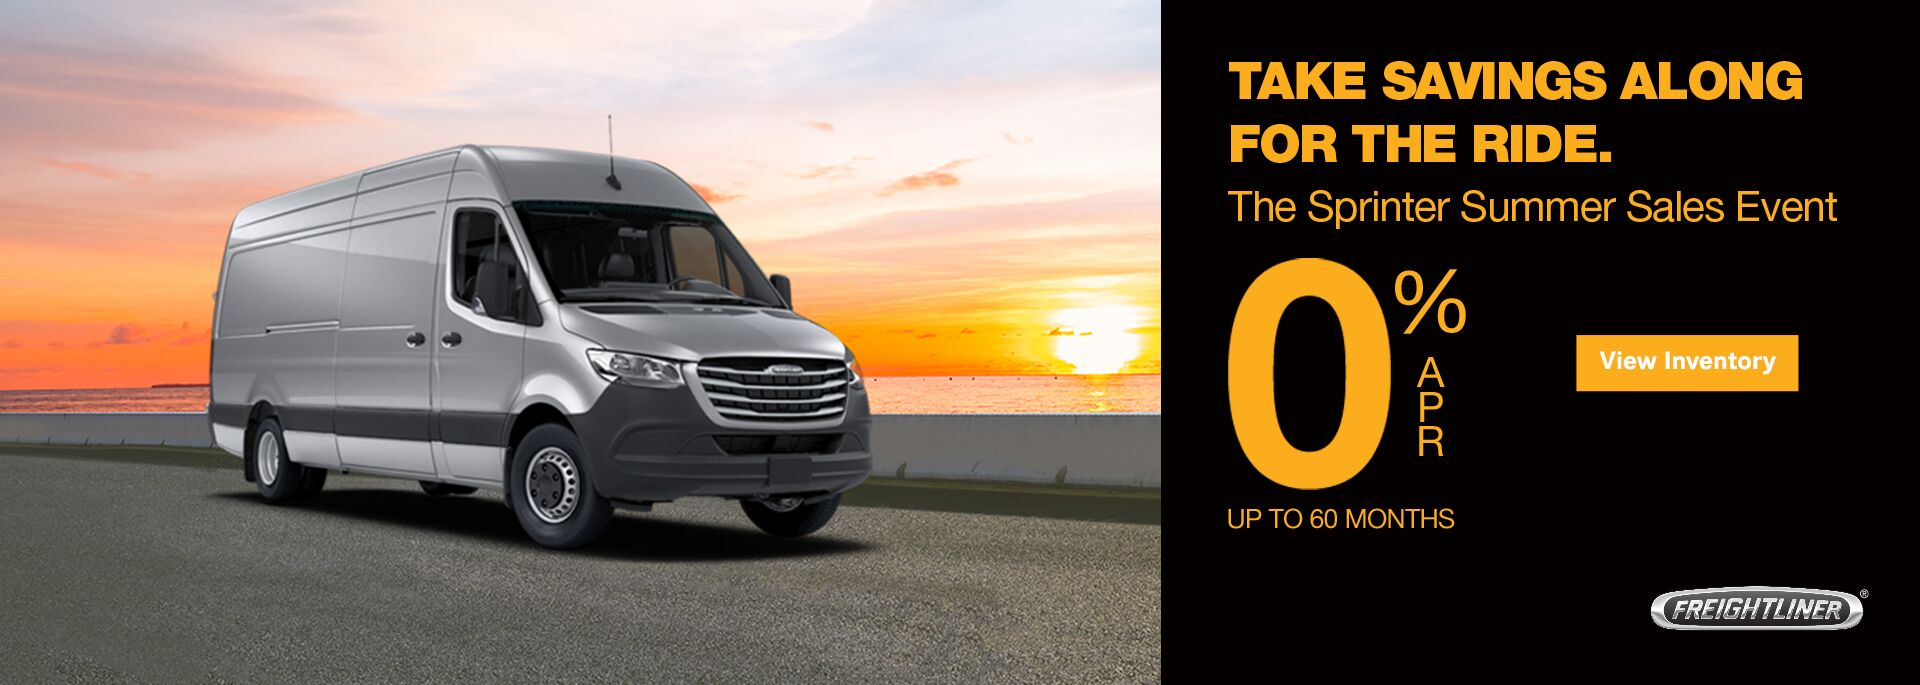 The Sprinter Summer Sales Event